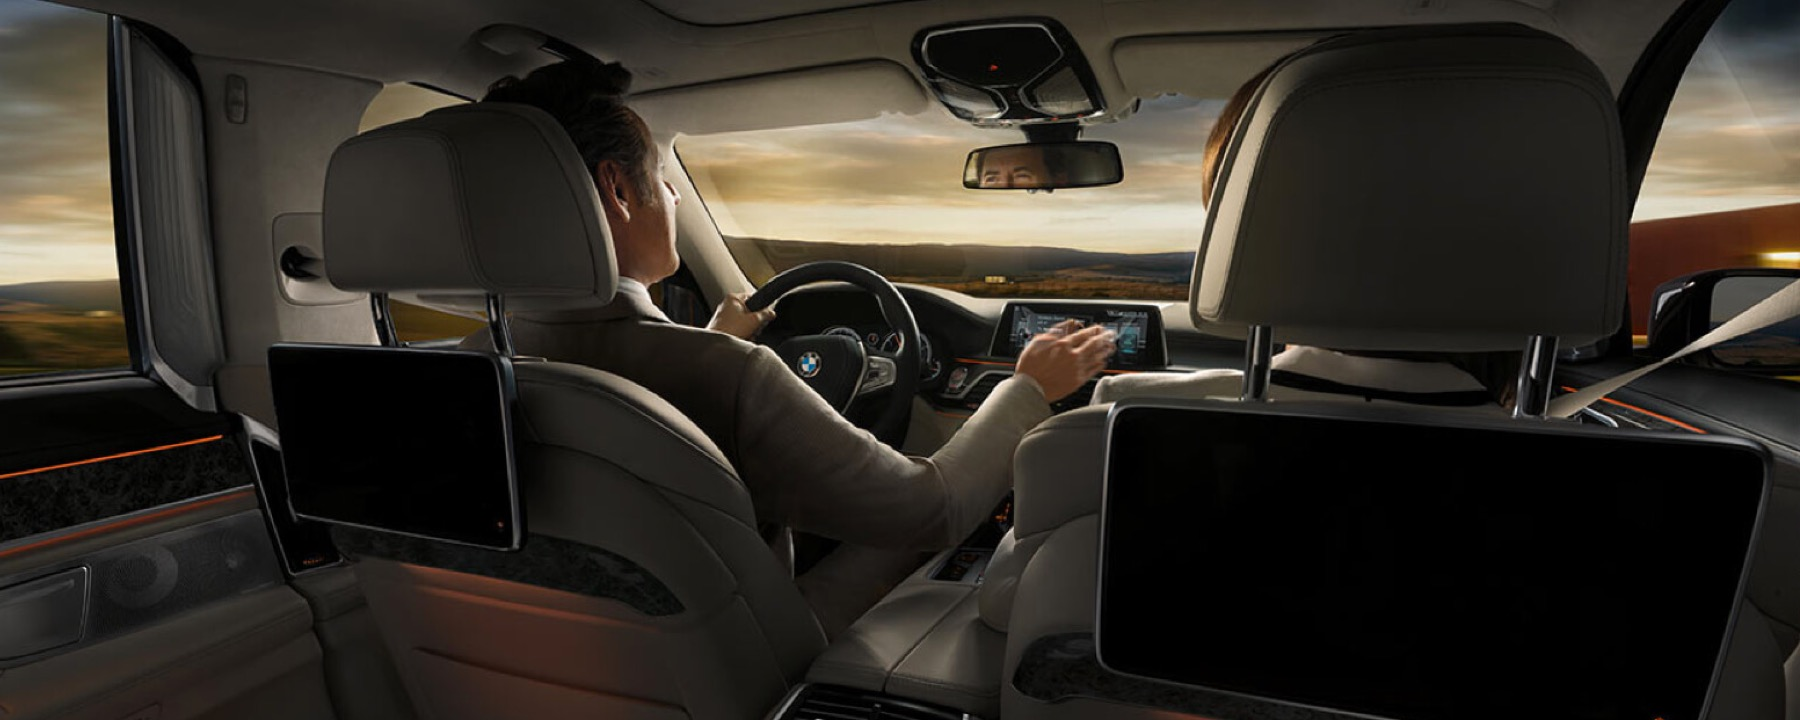 Bmw Creates Technology For The Future Bmw Of Palm Springs Blog